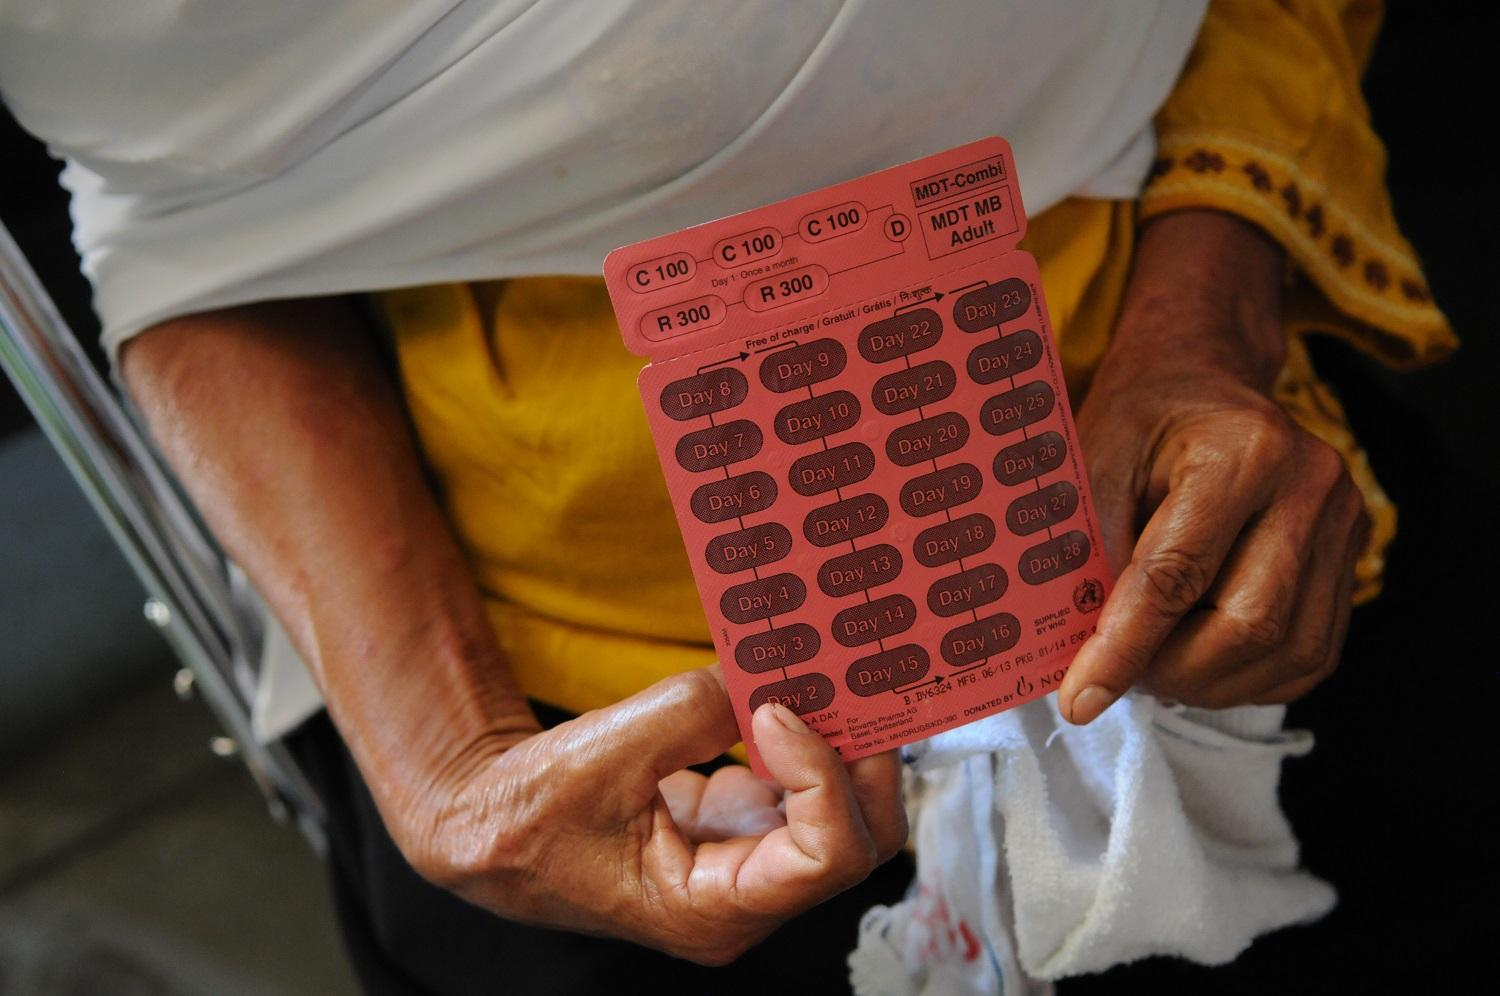 An Indonesian woman affected by leprosy holds up a blister pack of medicine in South Sumatra, Indonesia.(Photo: NLR)